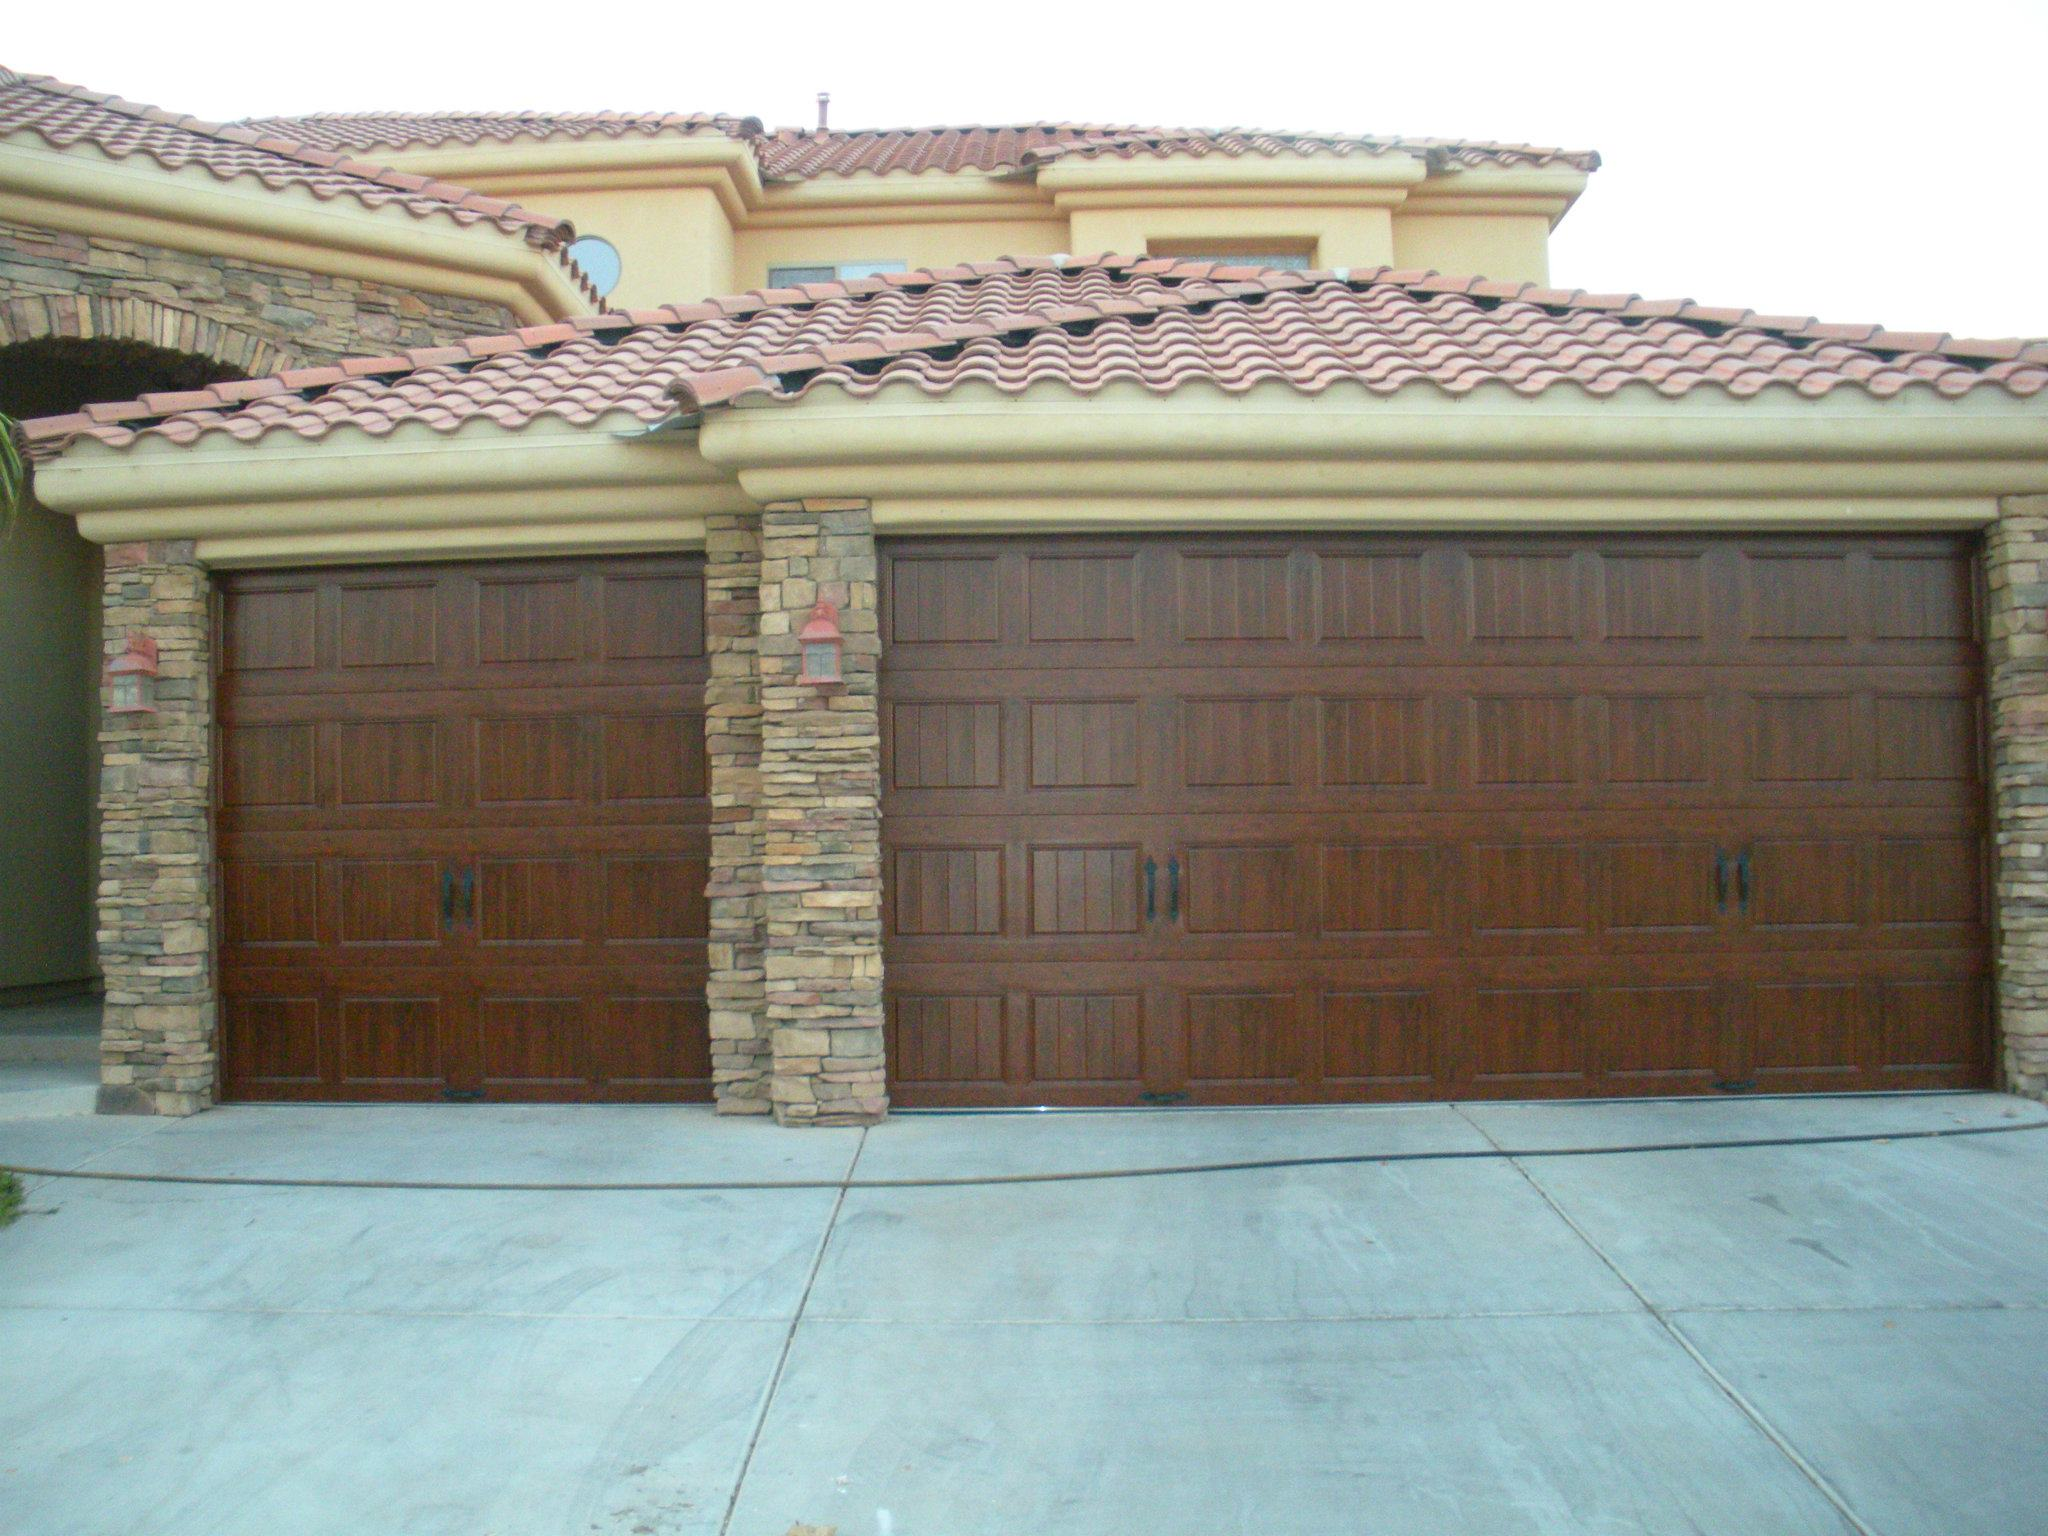 1536 #5F4838 Garage Door Installation JDT Garage Door Service save image Garage Doors Installers 37772048